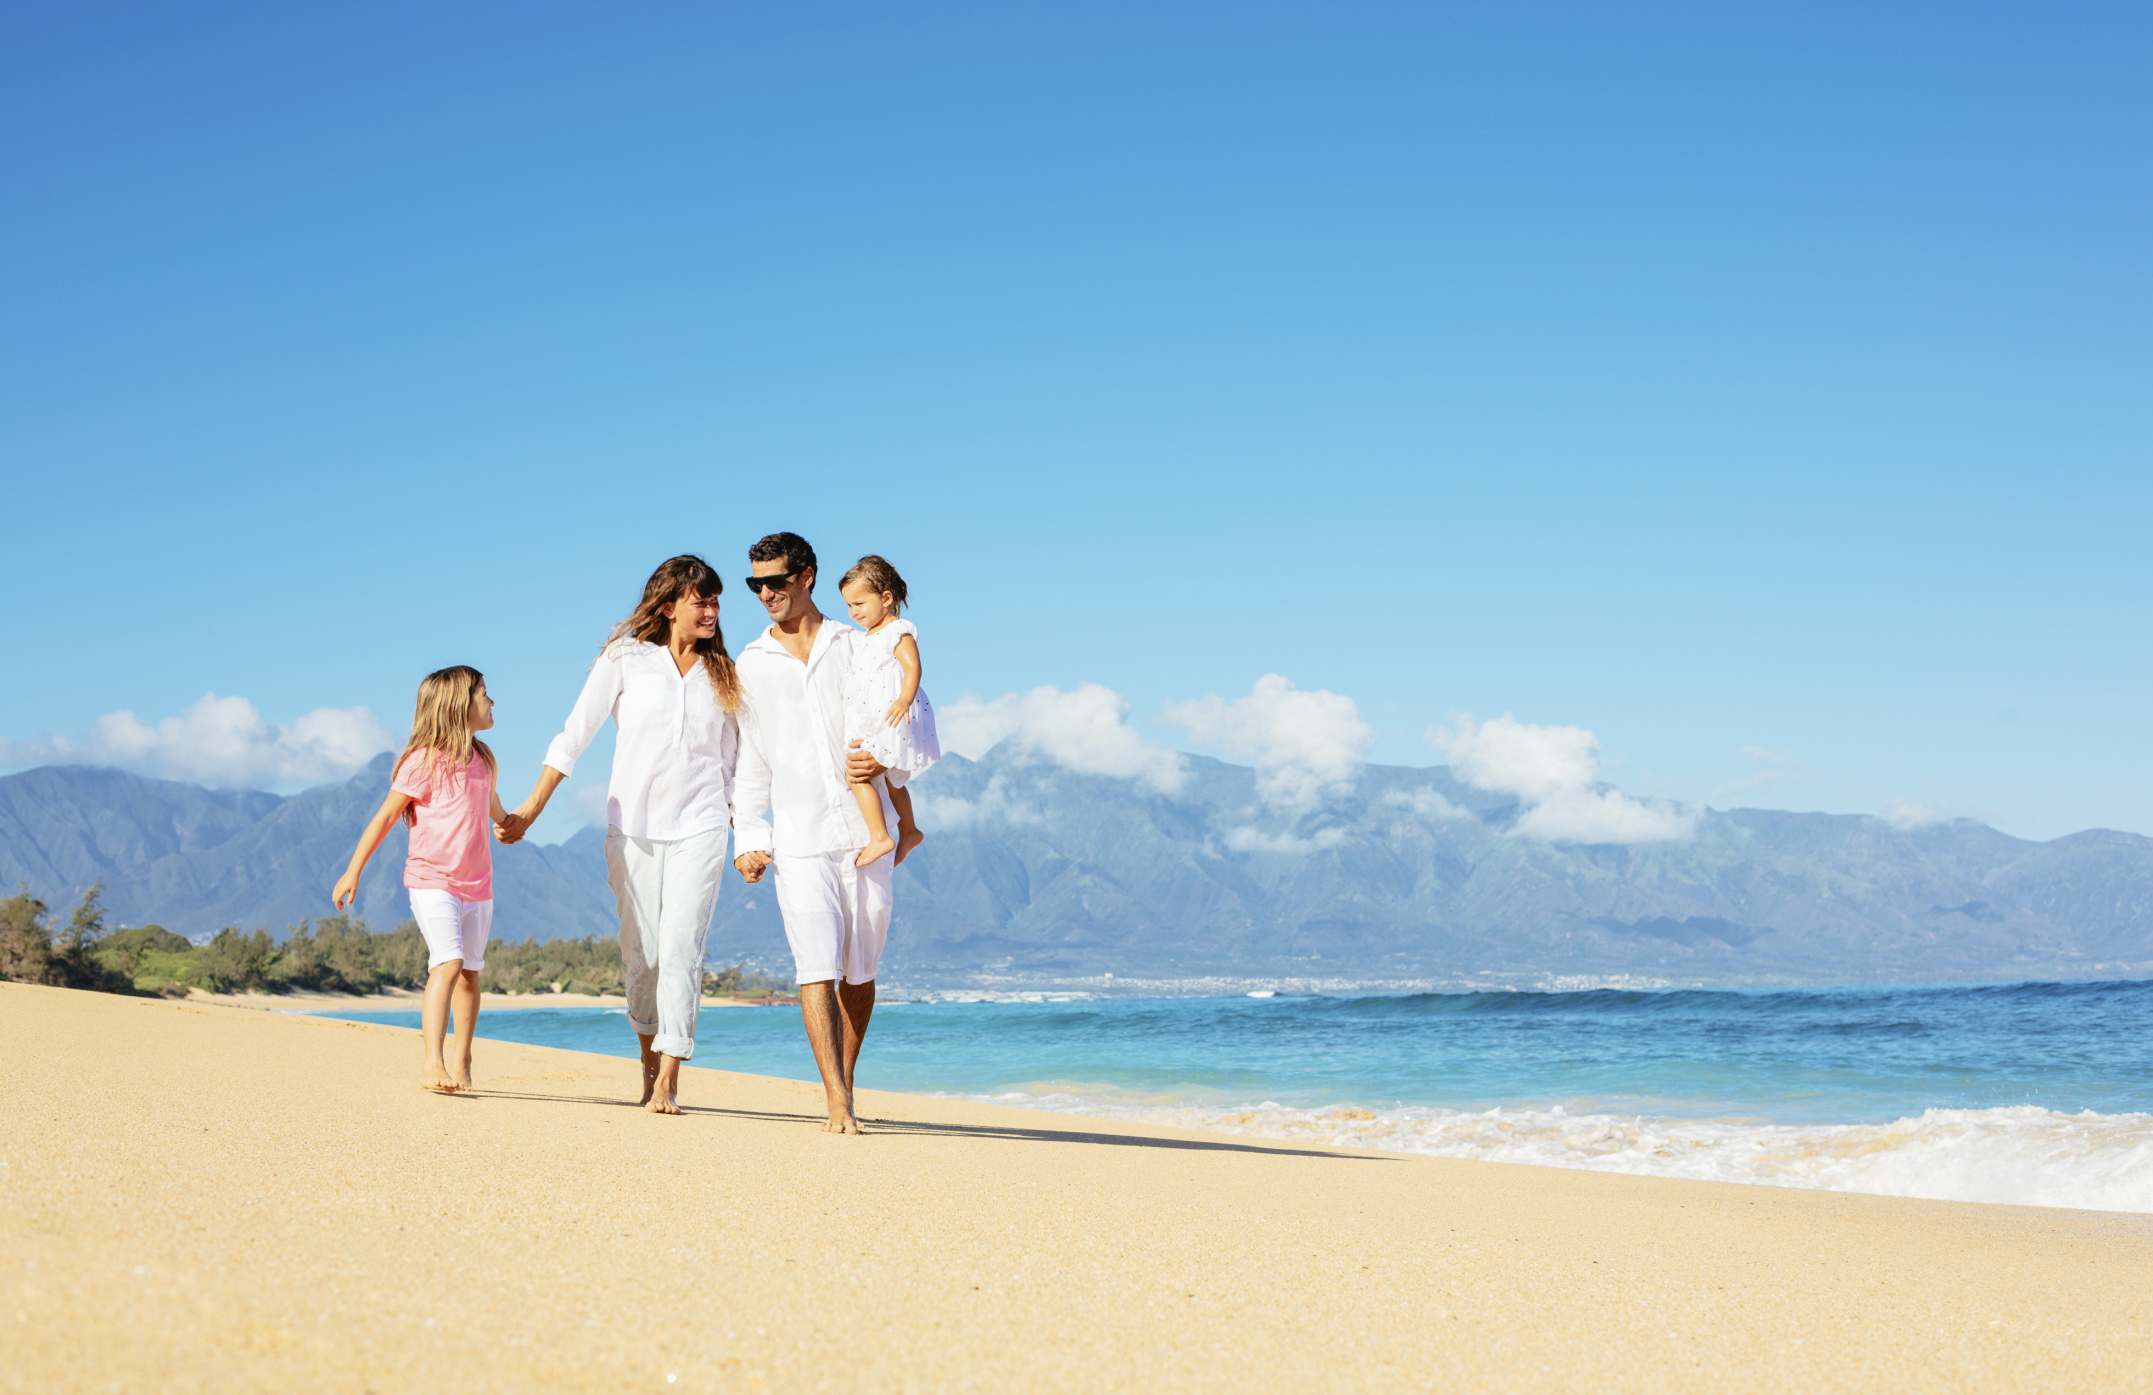 Affordable family vacations grapevine travel service for The cheapest beach vacation